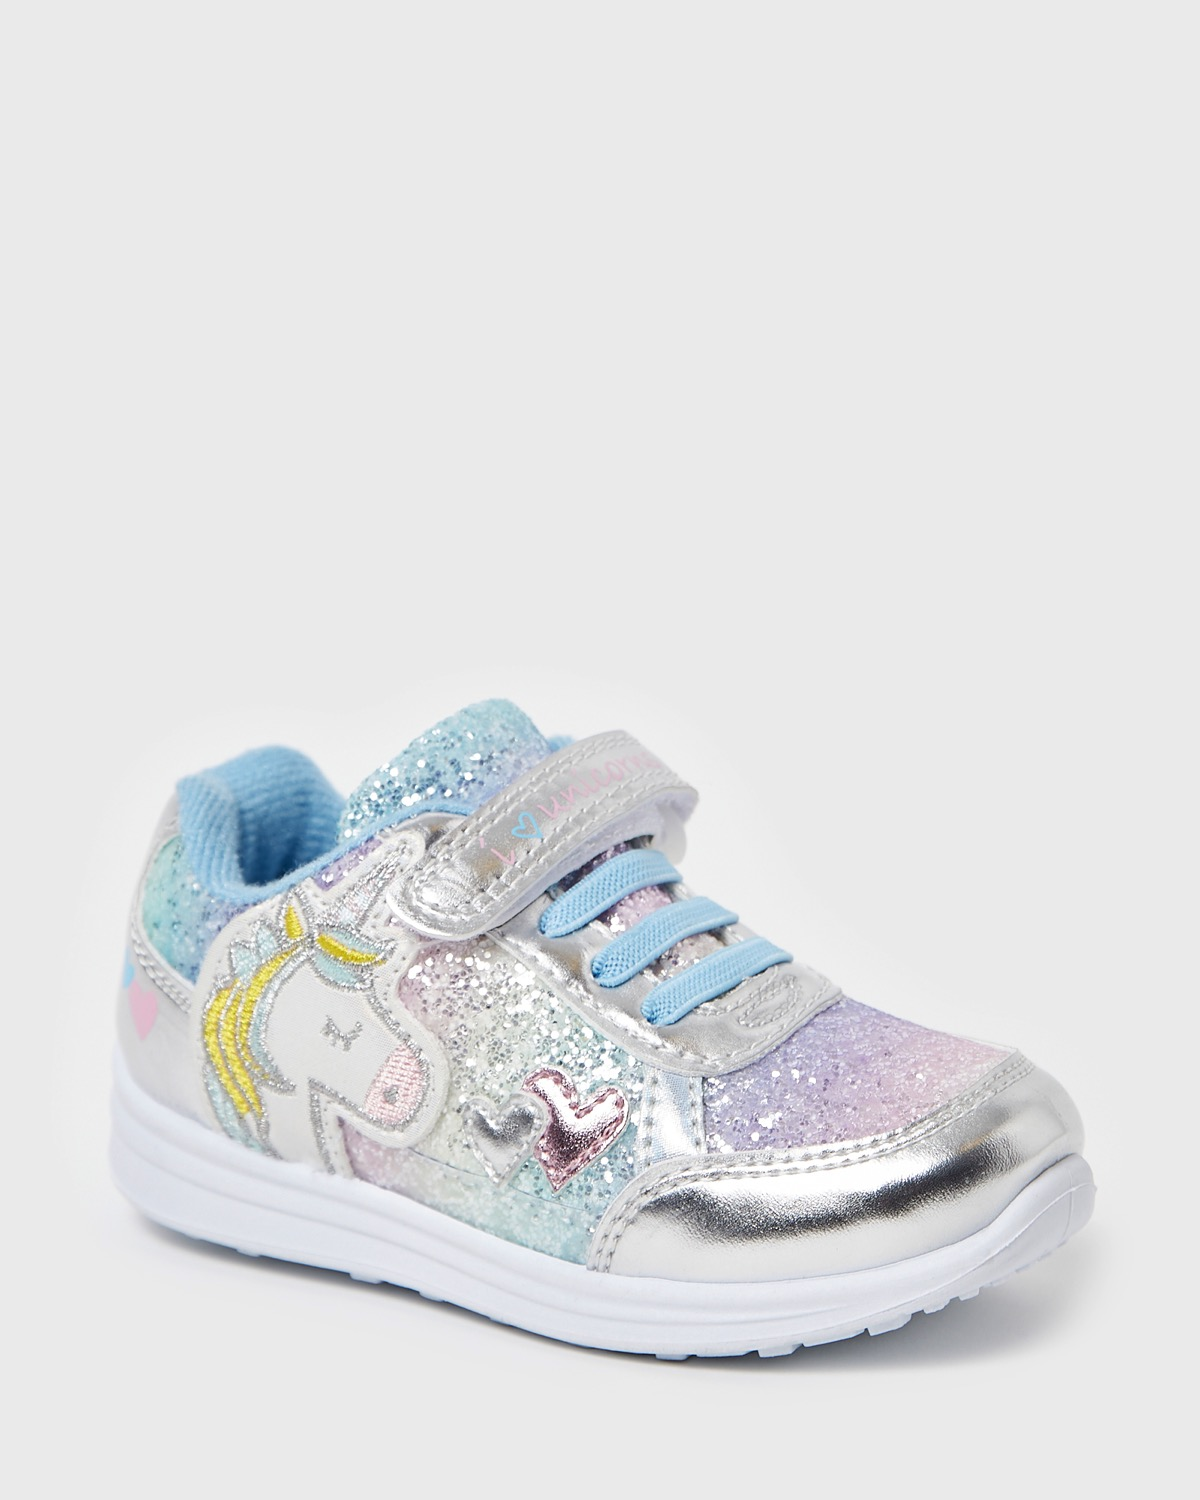 Silver Younger Girls Unicorn Glitter Shoes